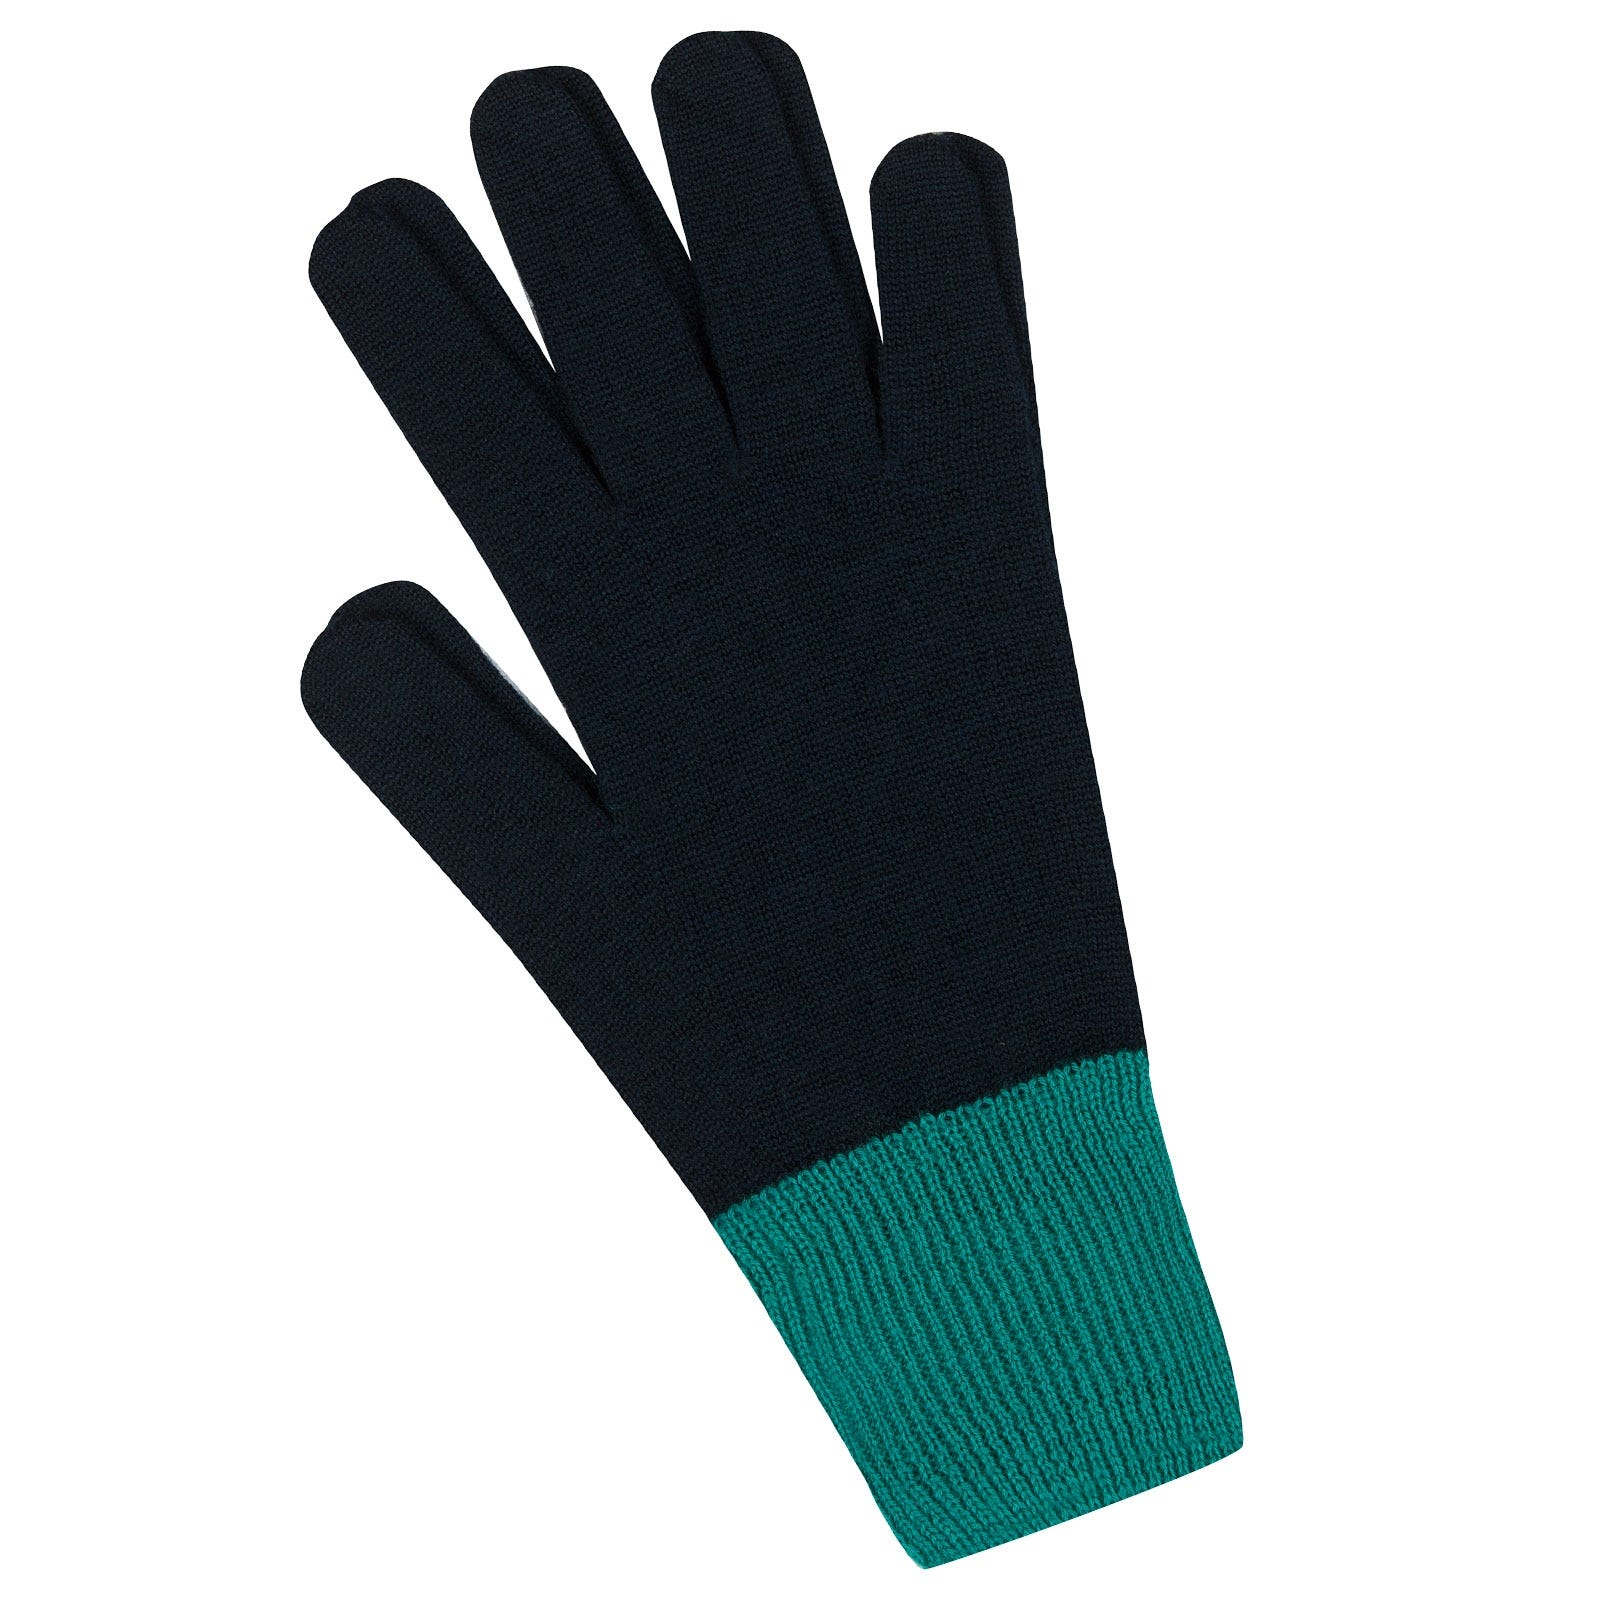 John Smedley Pasteur Merino Wool Gloves in Orion Green-s/m